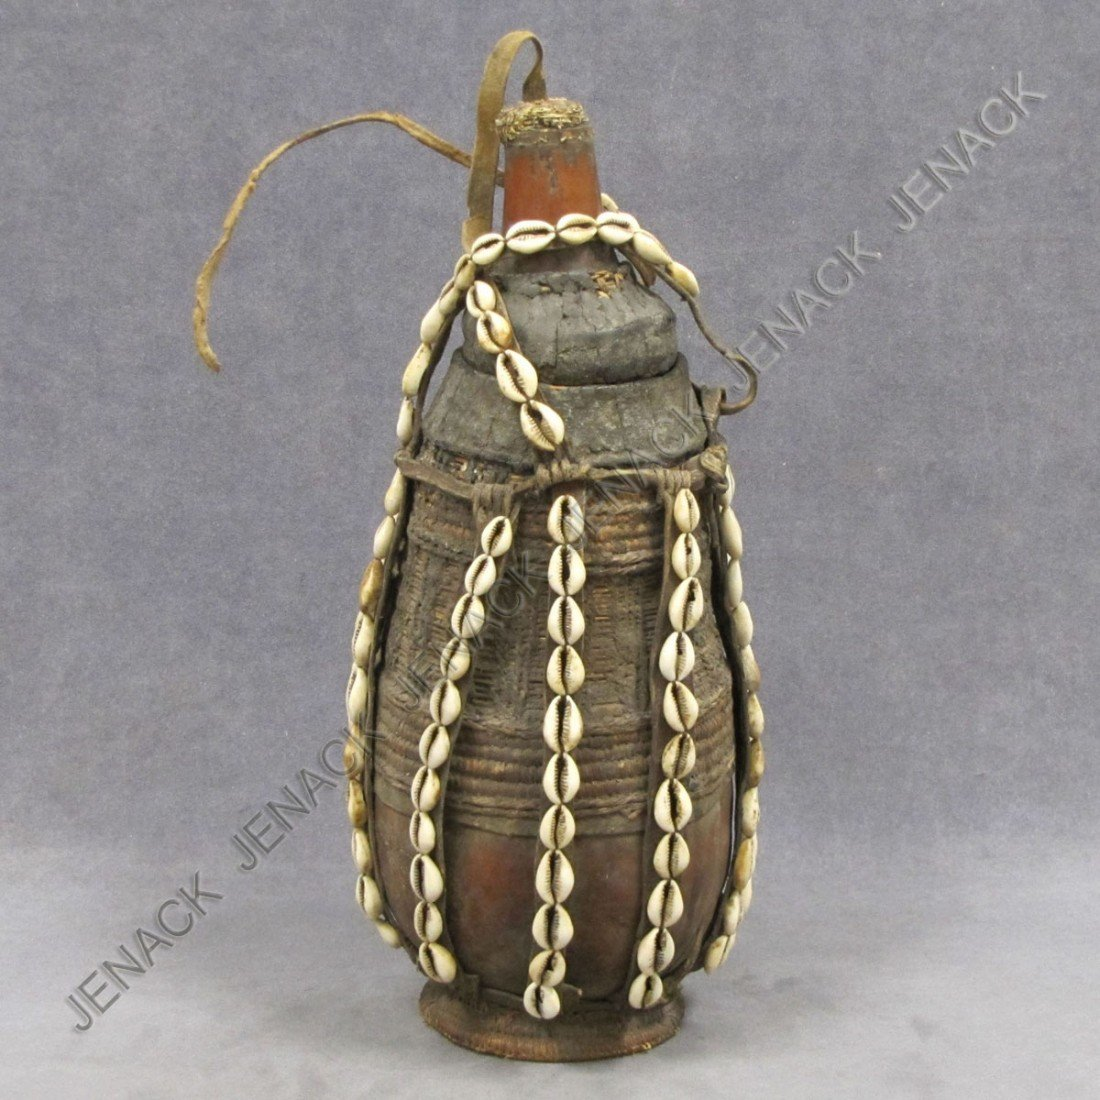 12: ETHIOPIAN GOURD LEATHER AND BASKETRY PILGRIM FLASK